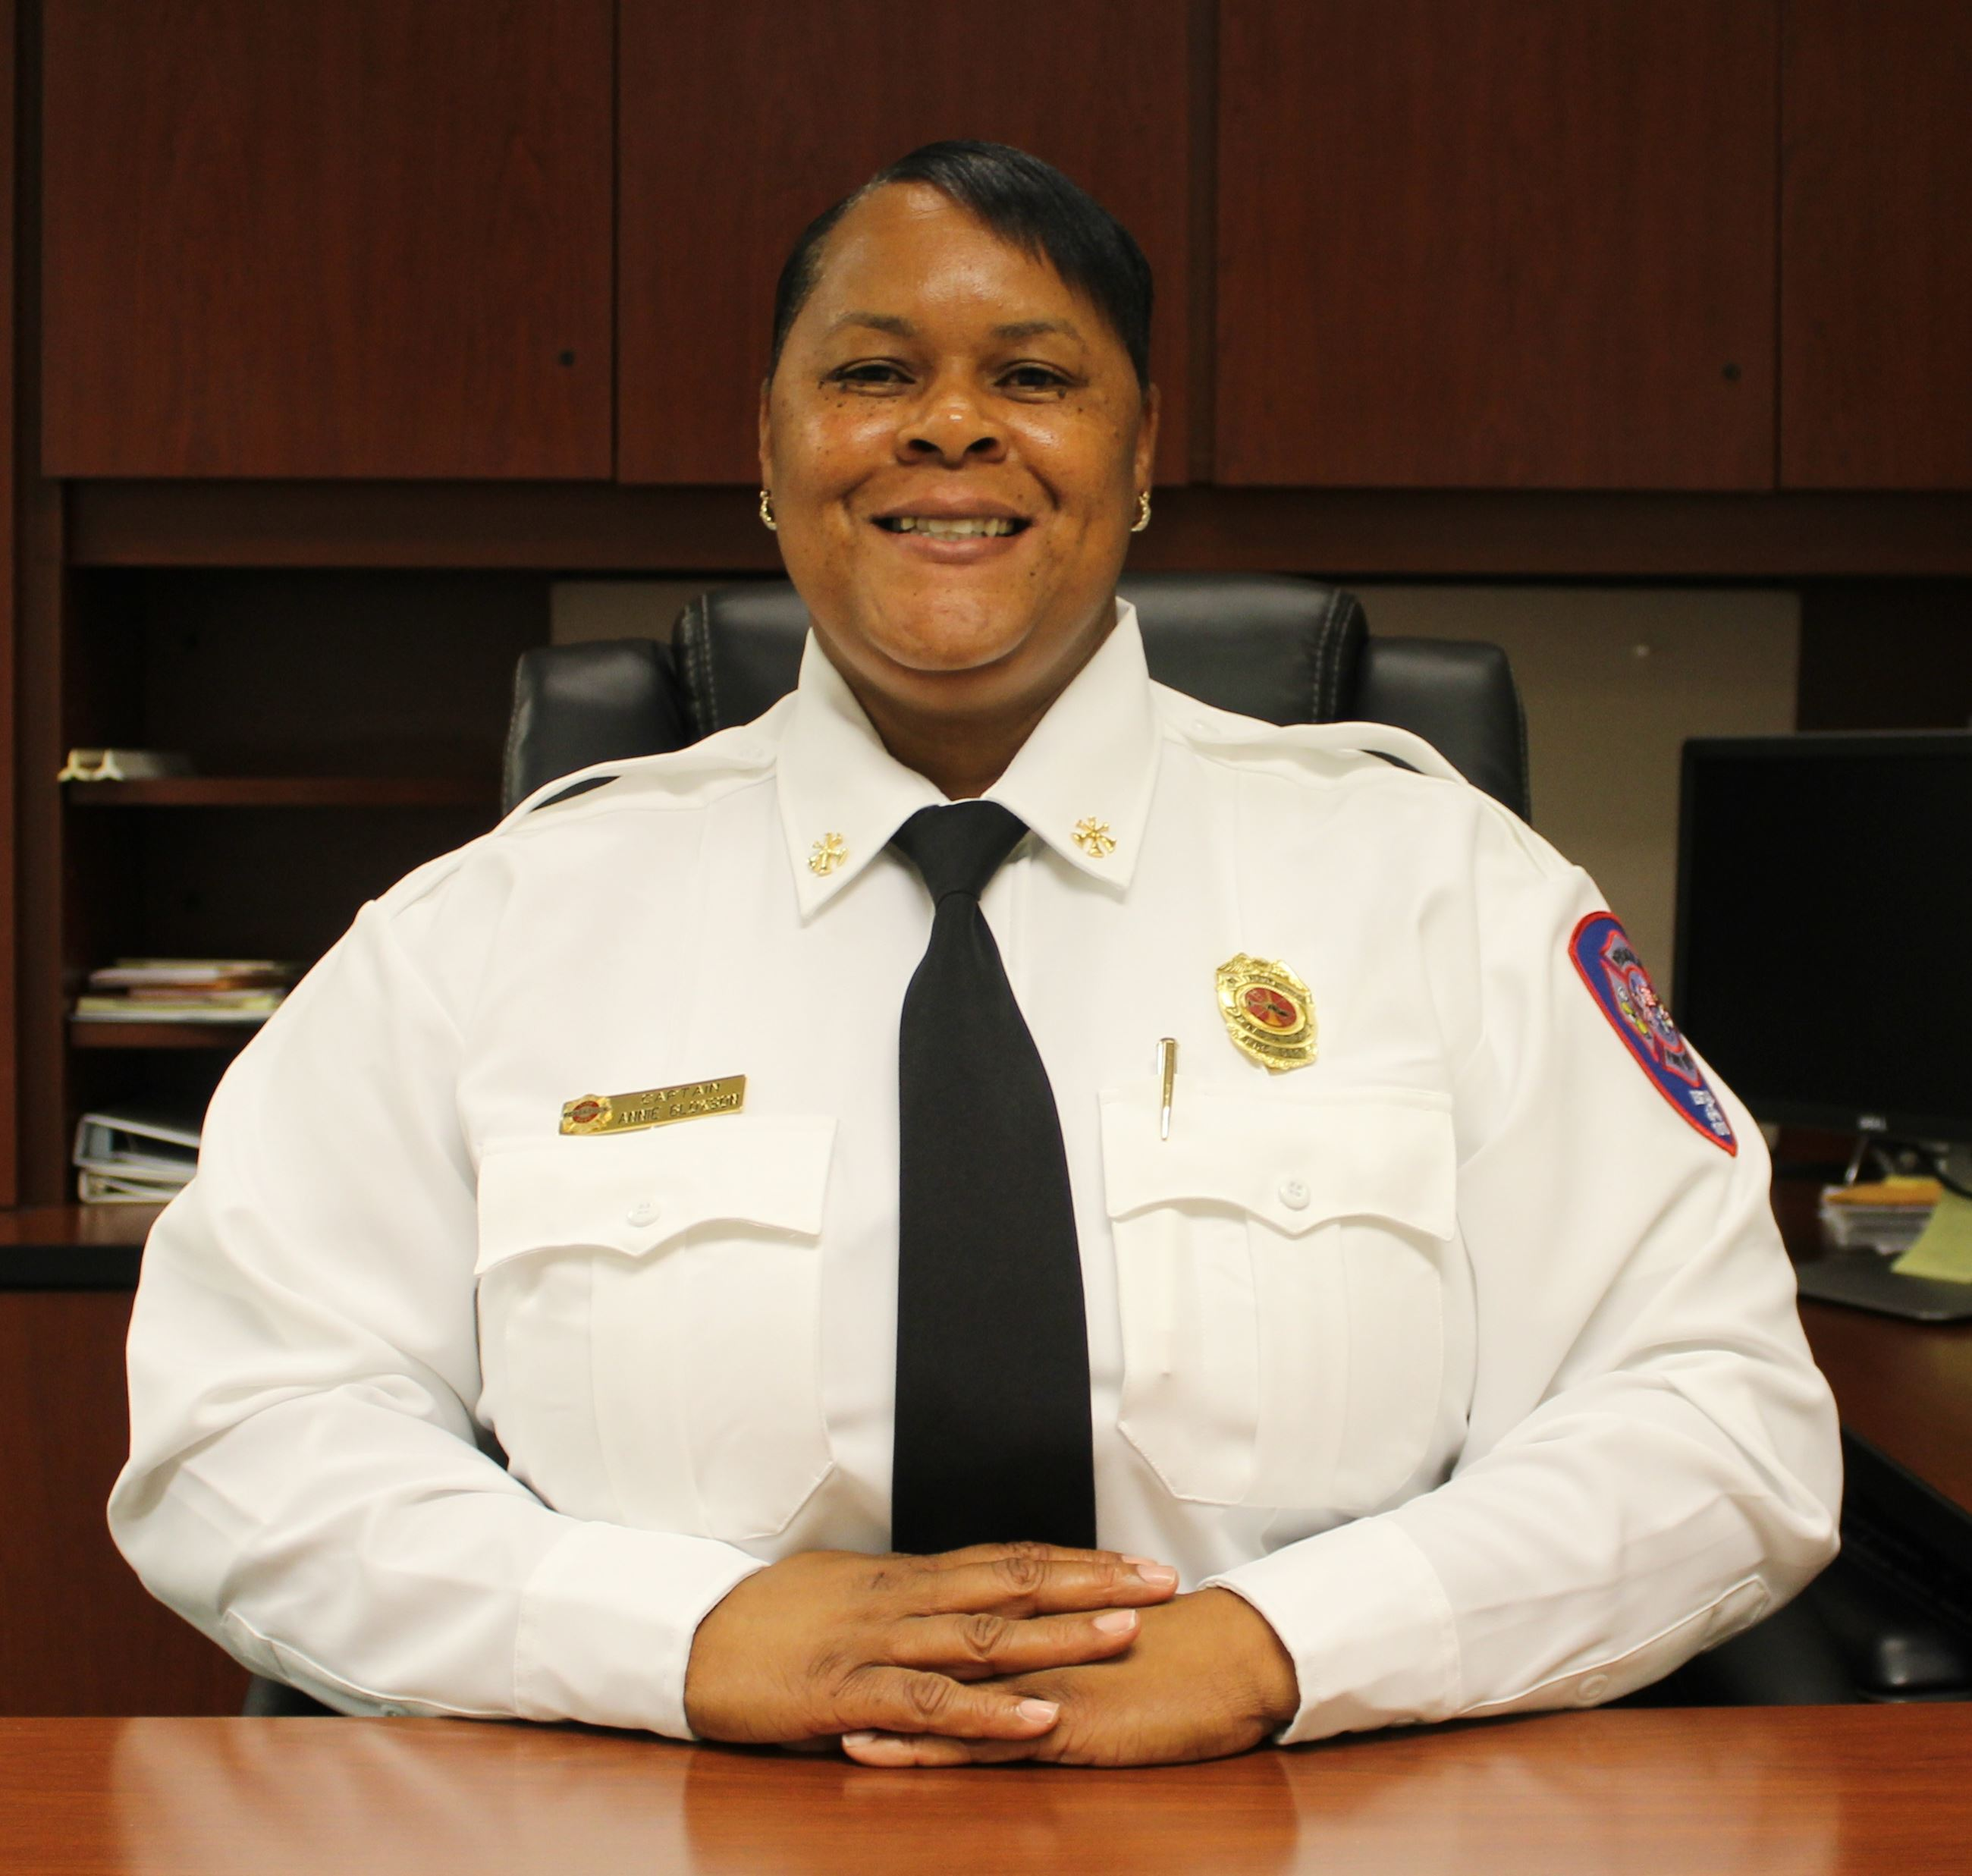 Battalion Chief Annie Bloxson